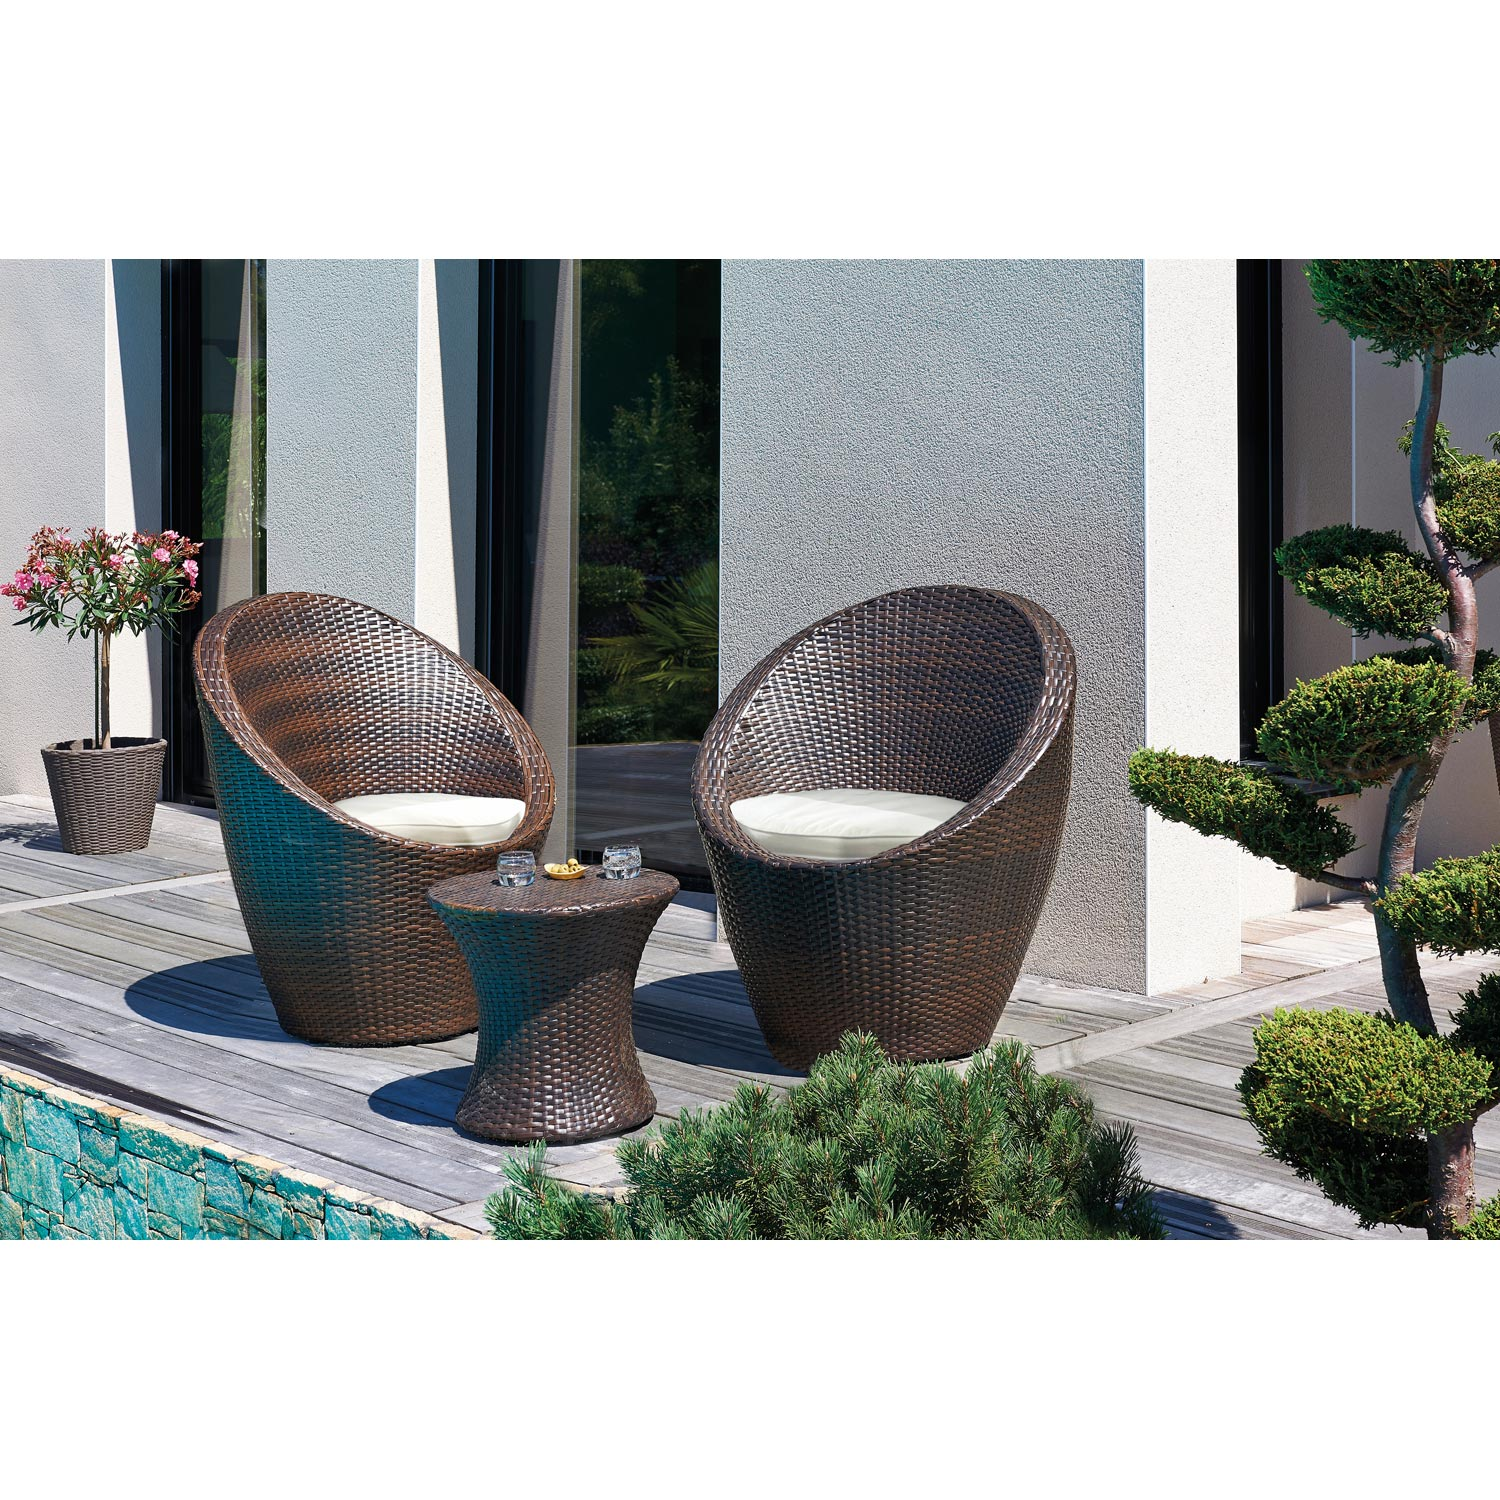 Salon bas de jardin totem r sine tress e chocolat 1 table 2 fauteuils ler - Leroy merlin salon jardin ...